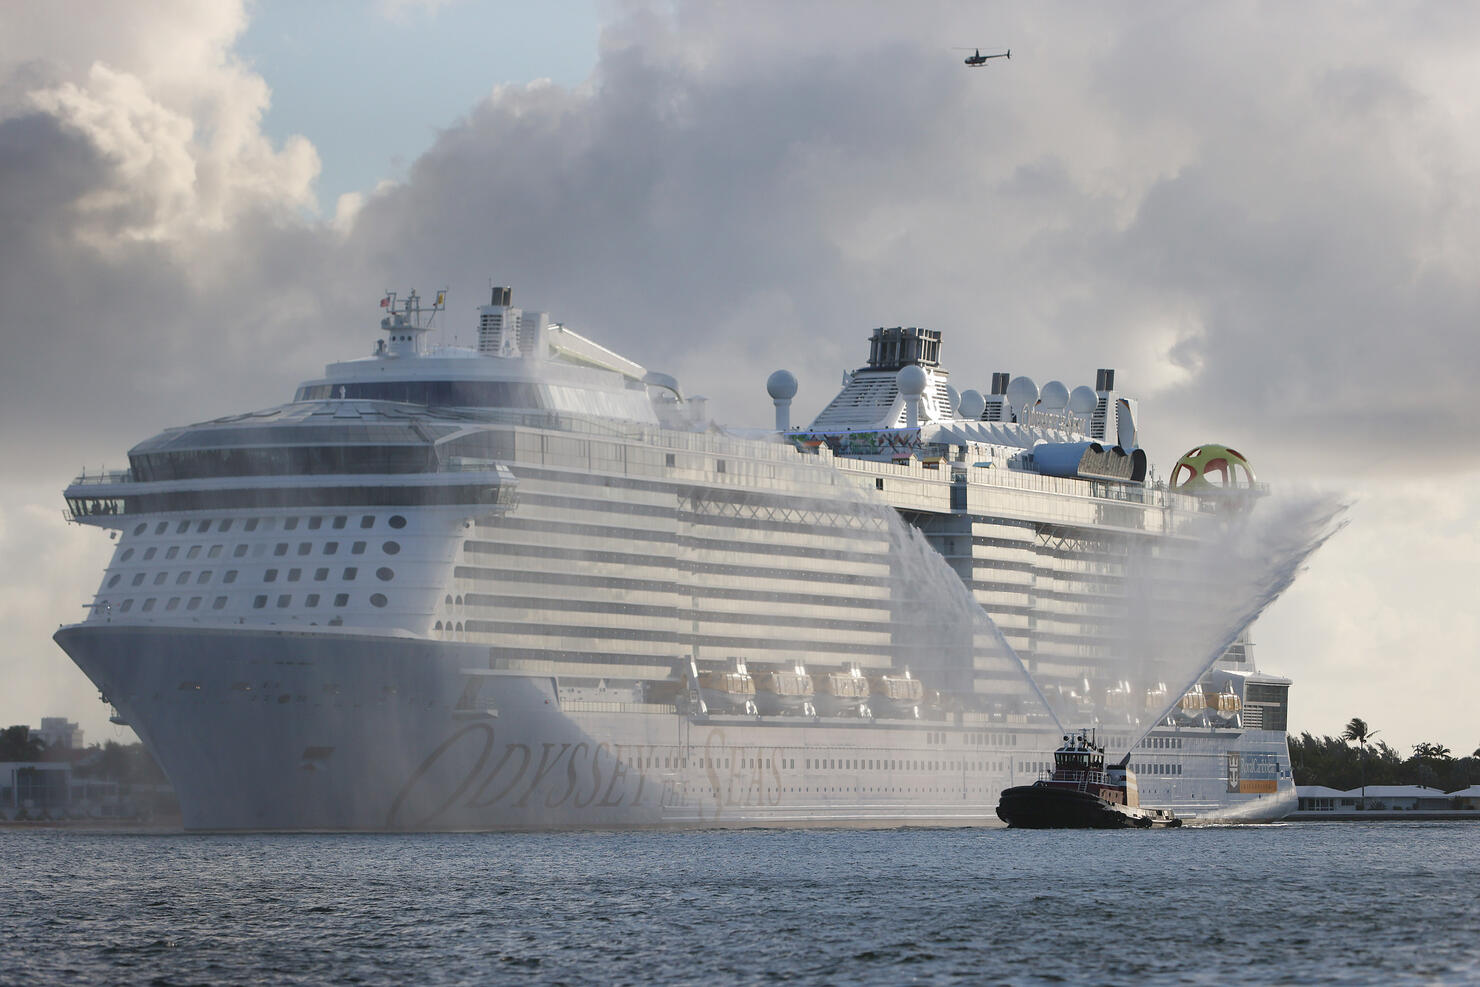 Port Everglades Welcomes Royal Caribbean Odyssey Of The Seas Ship, As The Florida Cruise Industry Slowly Restarts